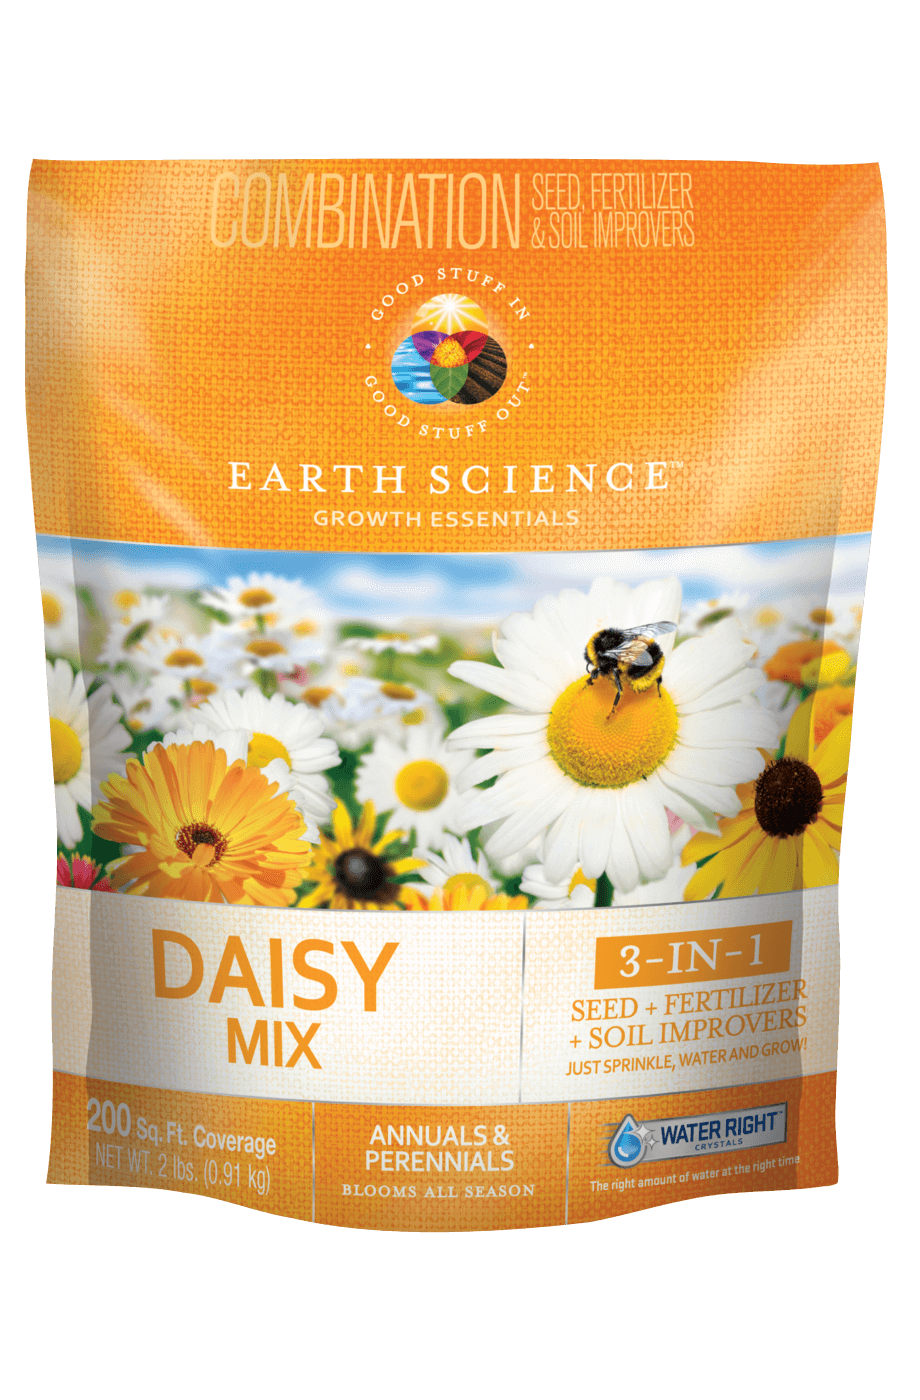 Earth Science Wildflower Daisy Mix